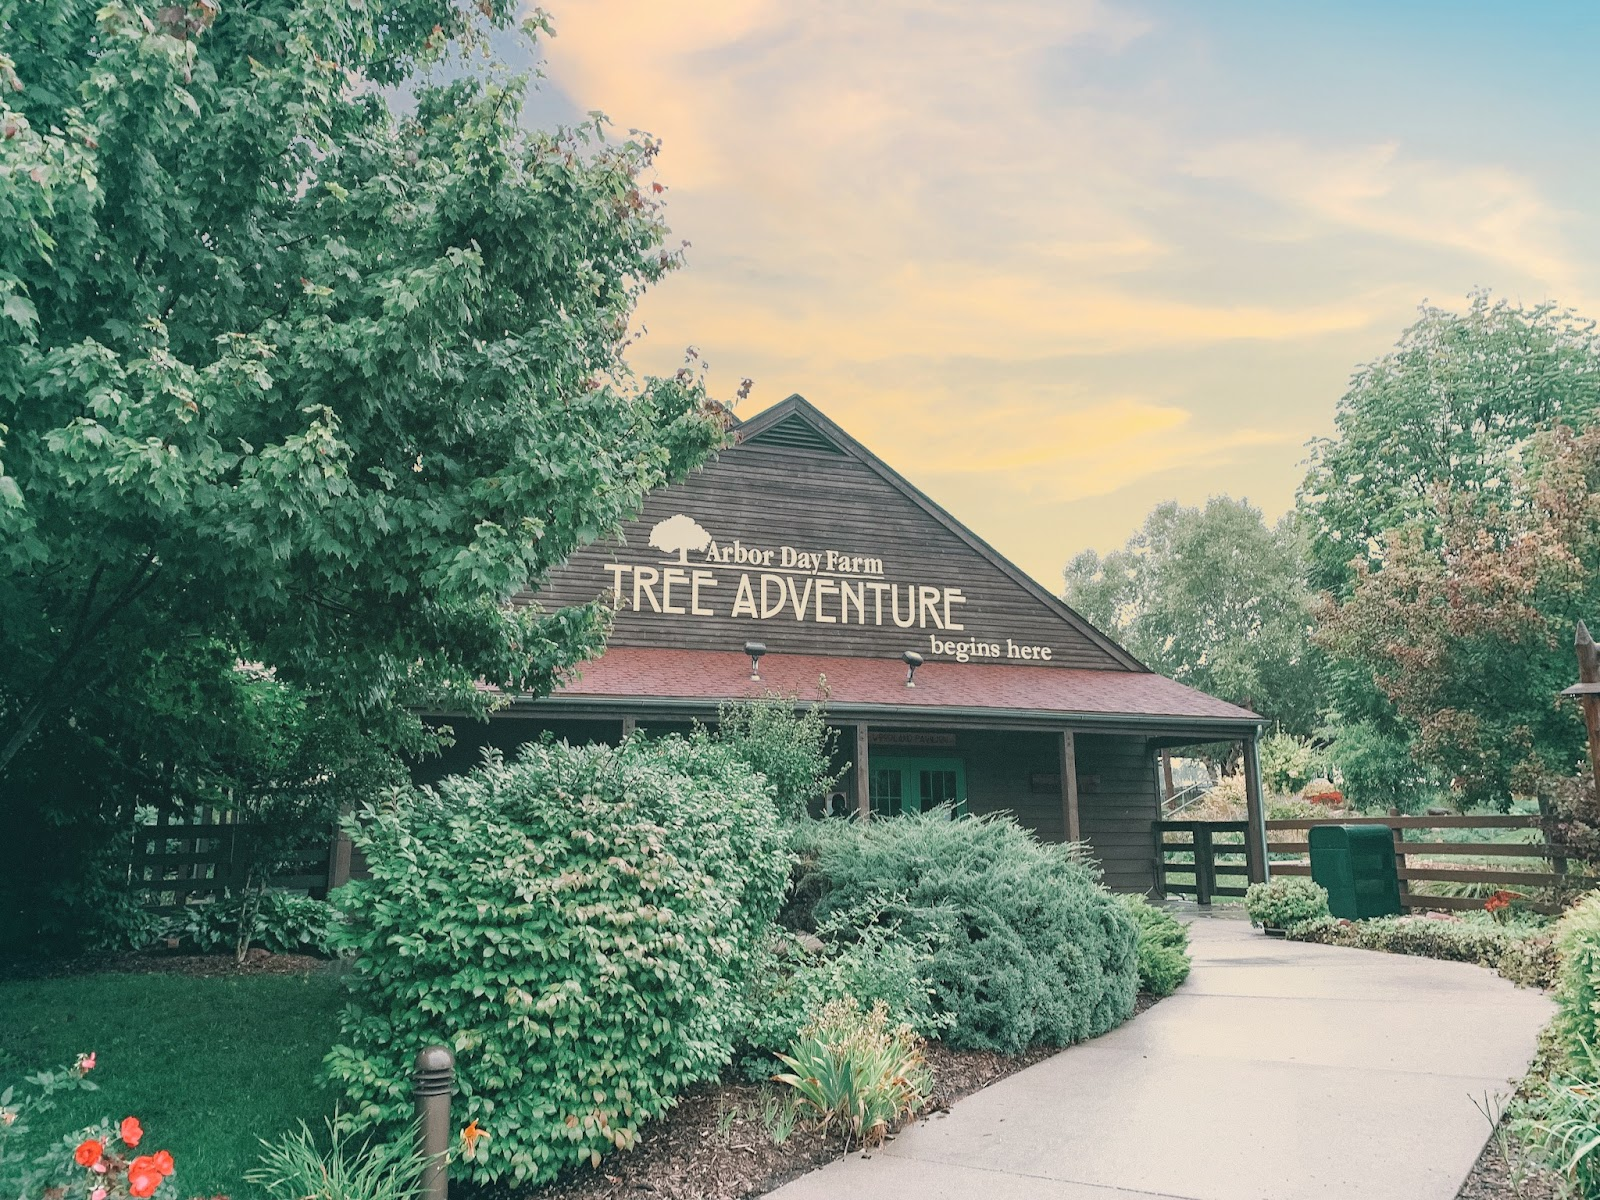 Stay at Arbor Day Farms' Lied Lodge | Lied Lodge | Arbor Day Foundation | Arbor Day Lodge | Nebraska City, Nebraska | Where to stay in Nebraska City | Apple picking Arbor Day Farms | family road trip | Midwest road trip | best places to see fall leaves |